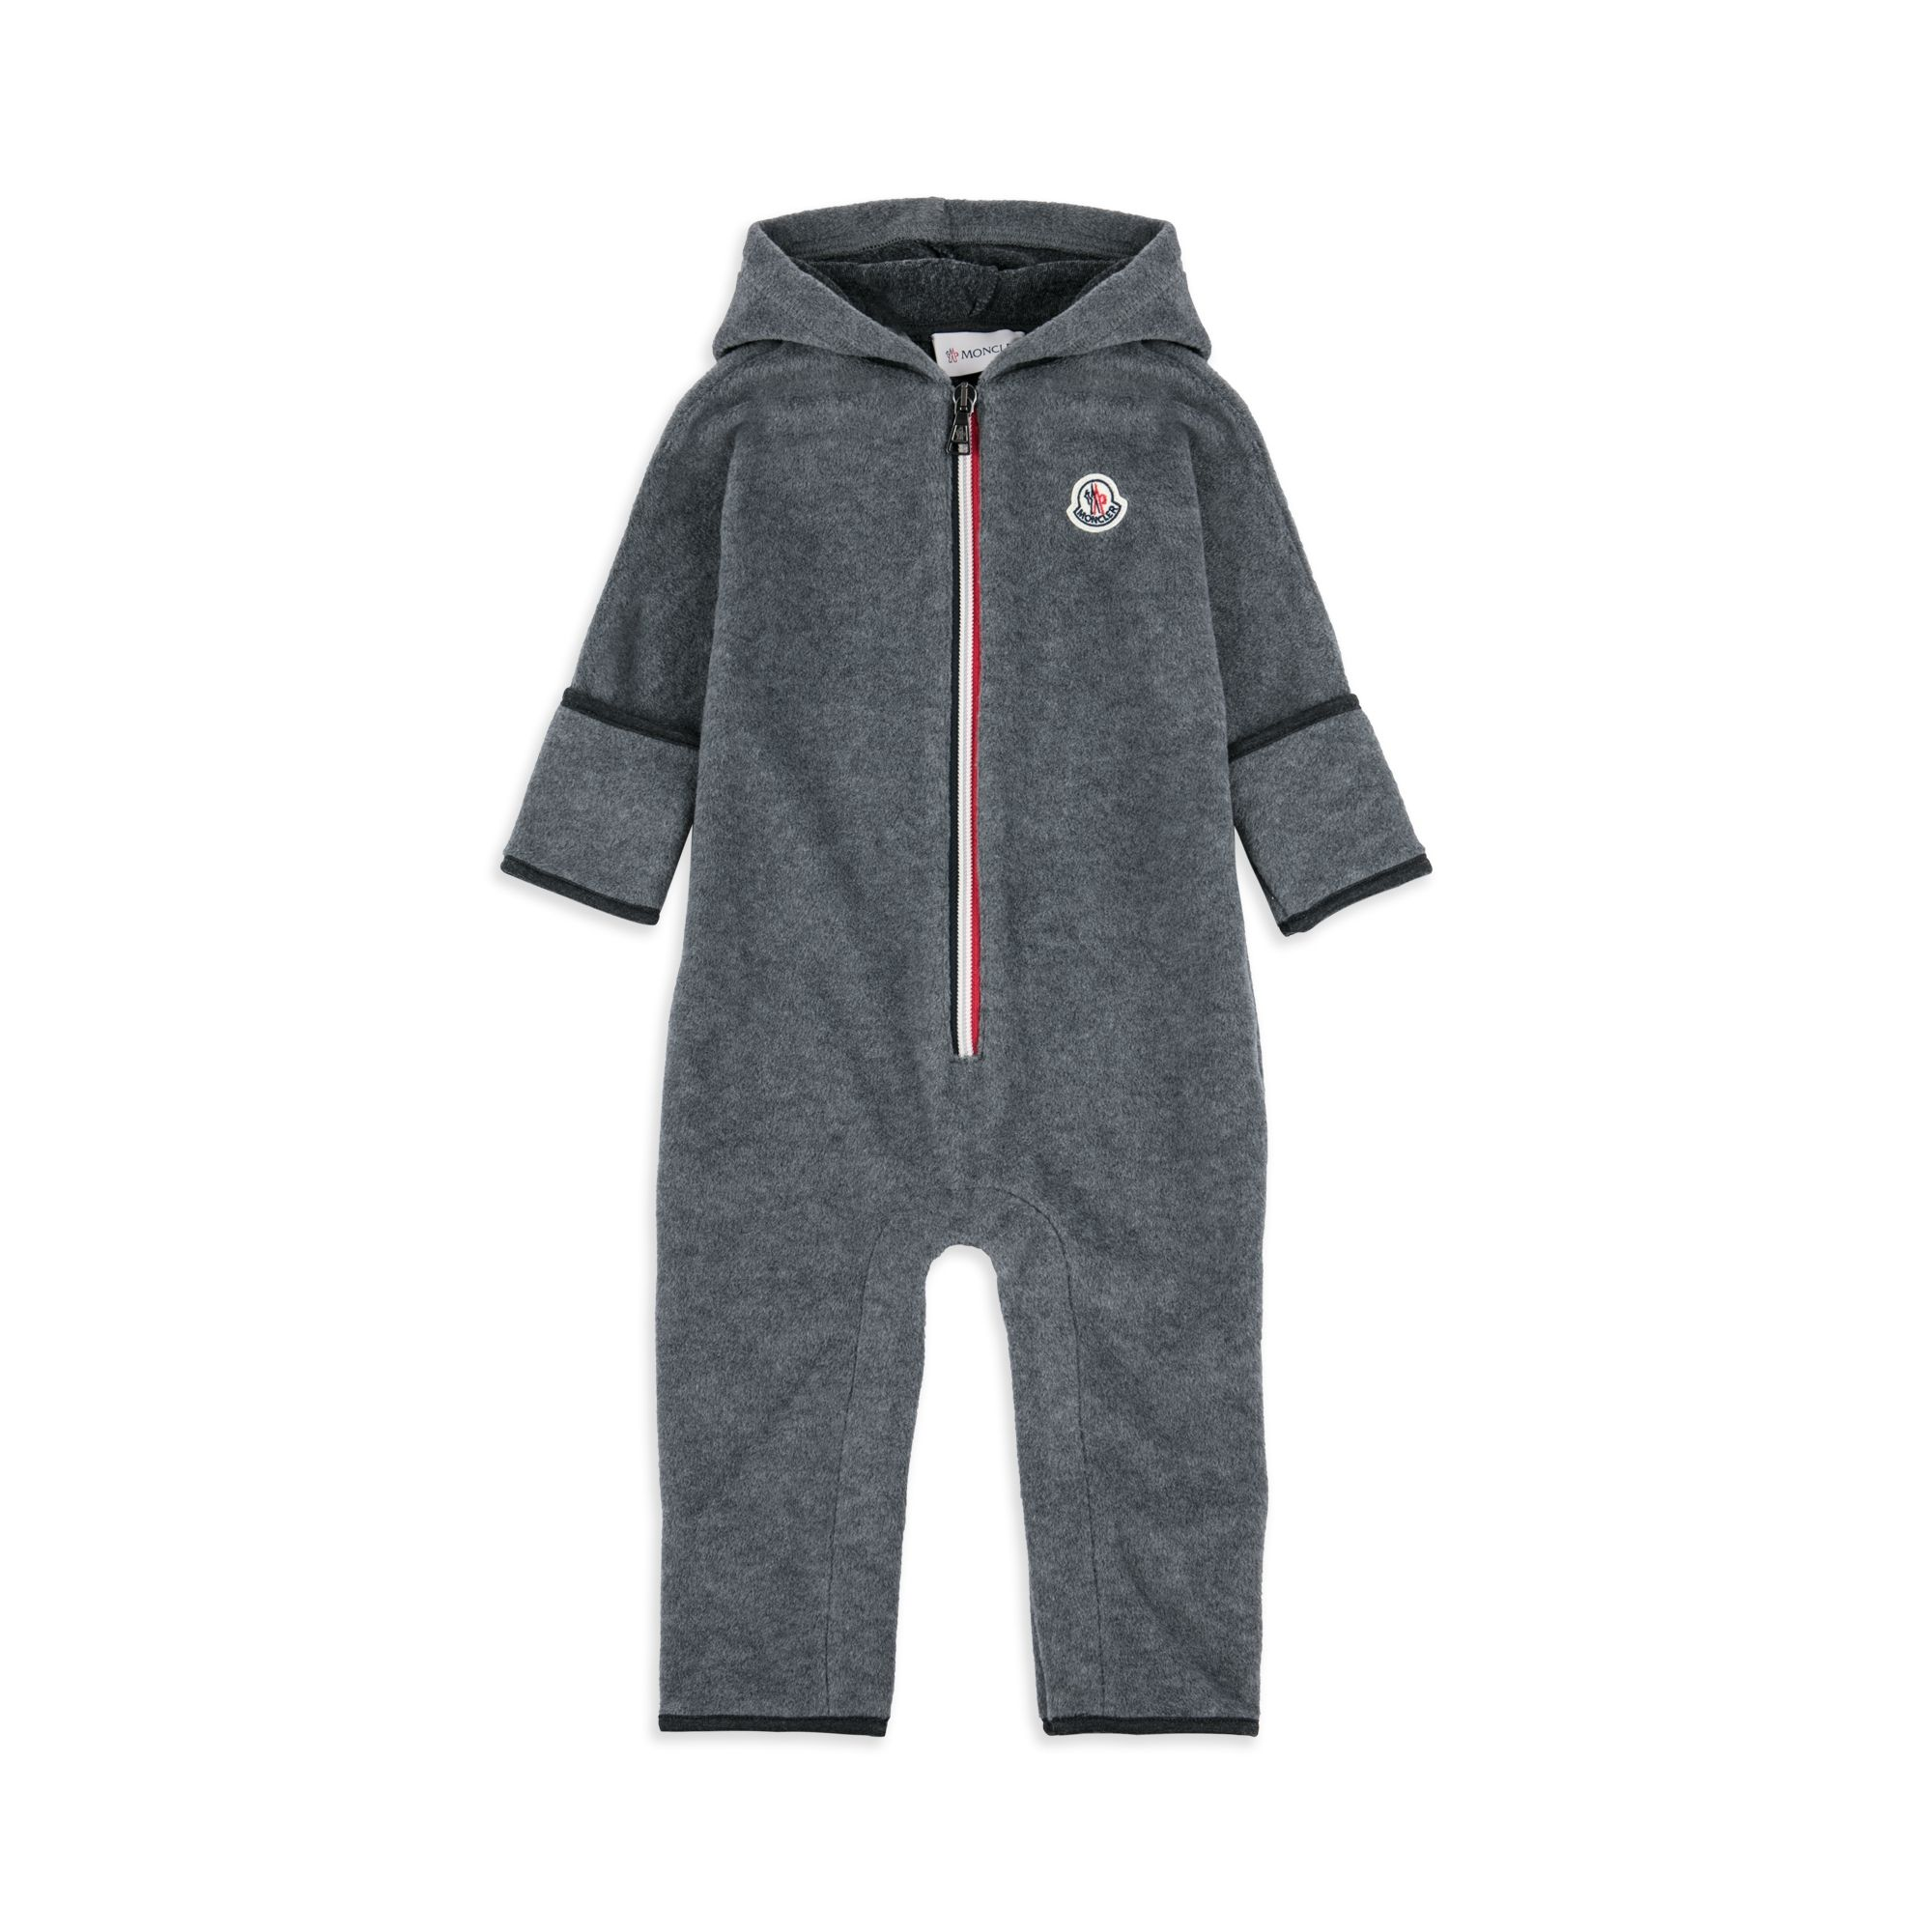 MONCLER Baby Boys Hooded Fleece Babygrow - Grey Baby boys coverall • Soft stretchy fabric •